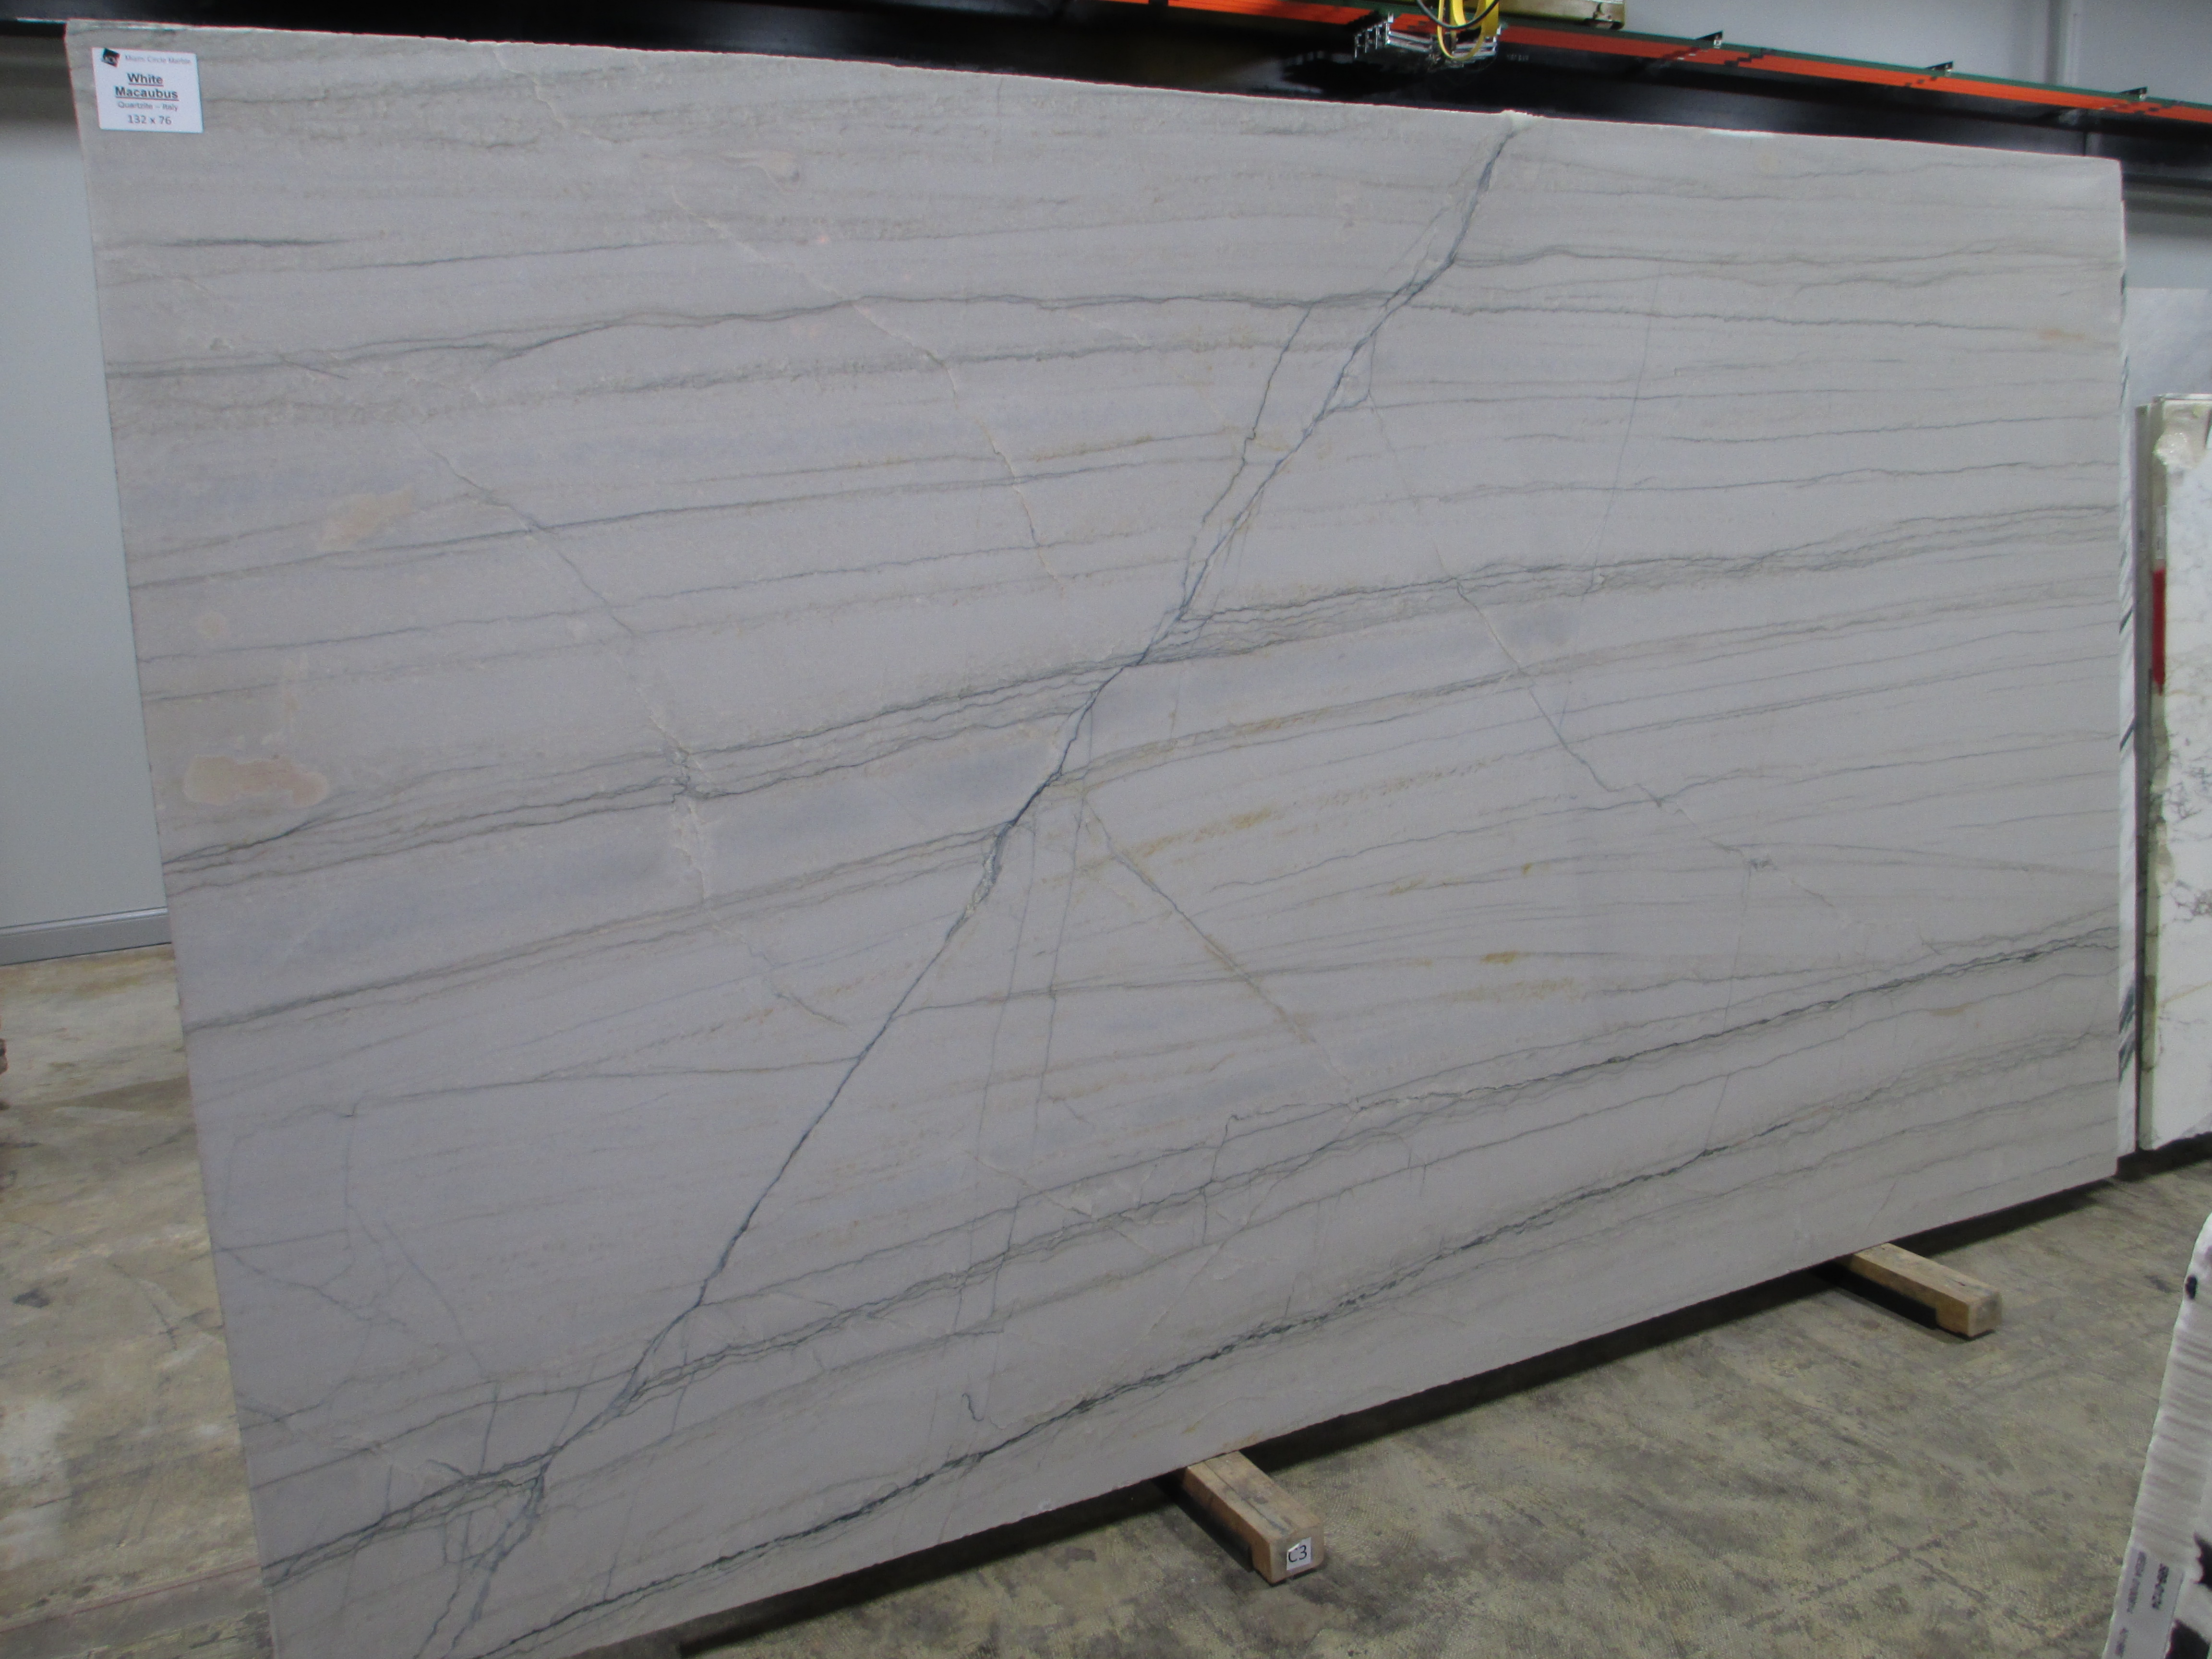 Leathered Granite Cost | Macaubas Quartzite | Quartzite for Countertops